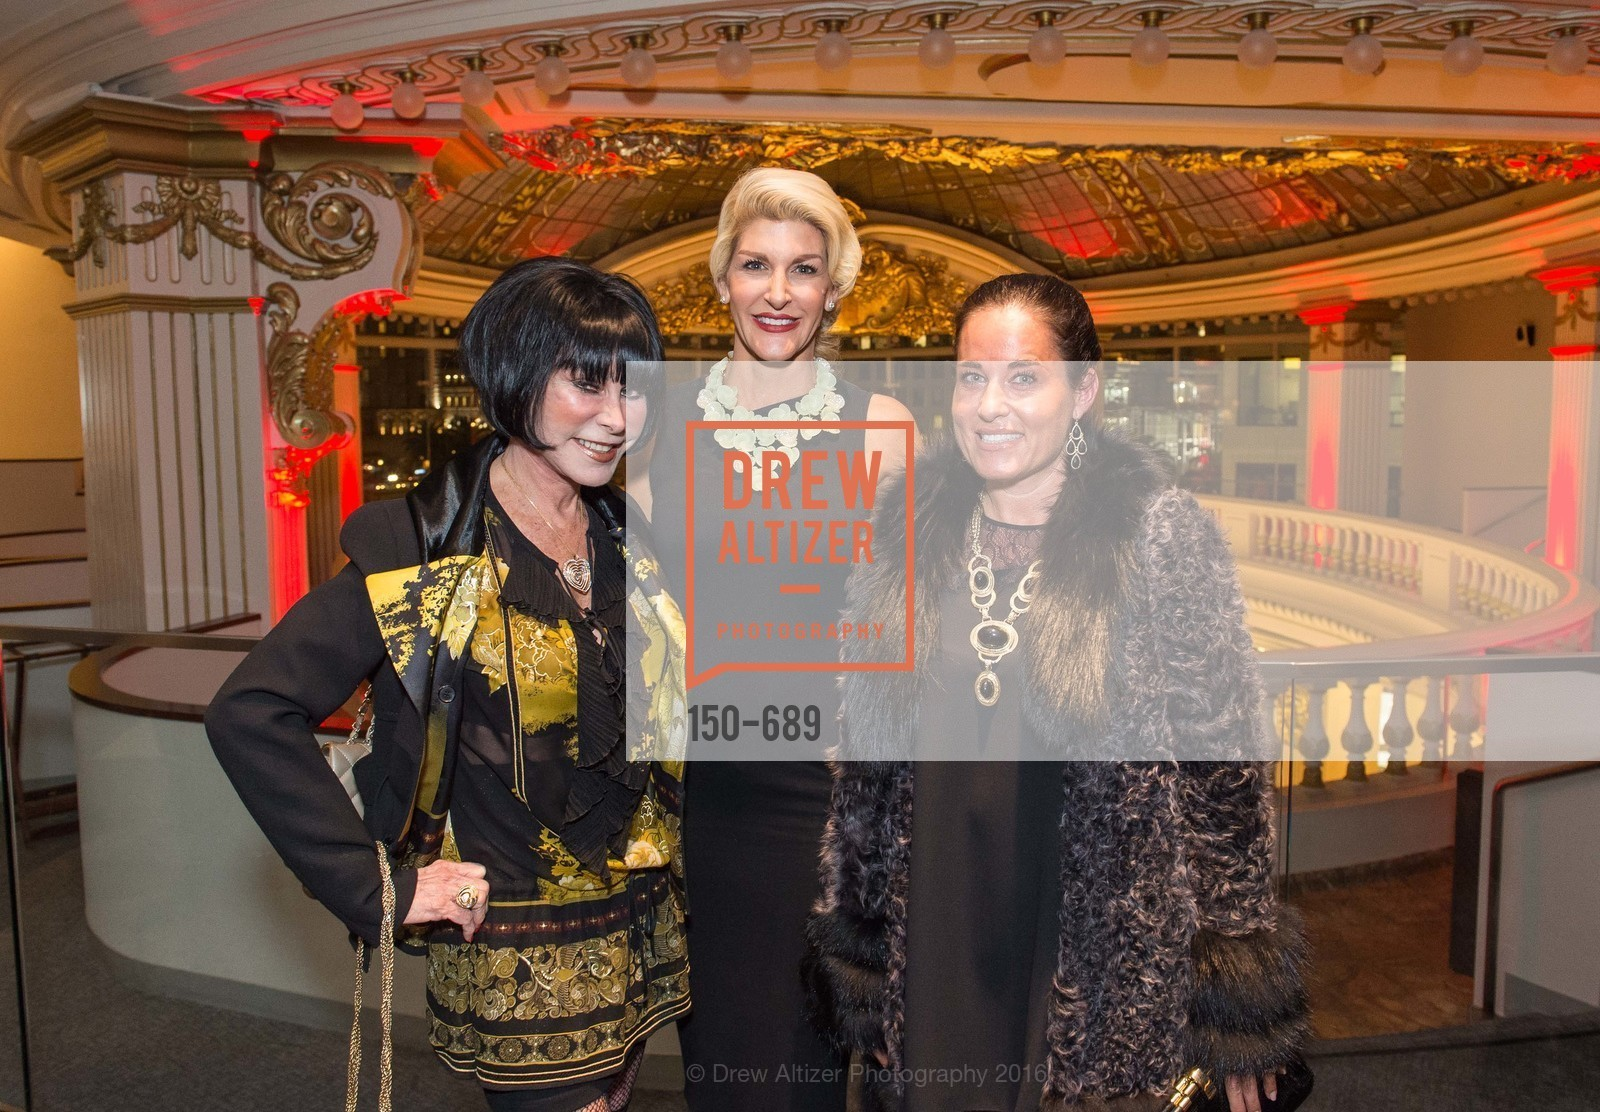 Marilyn Cabak, Karen Caldwell, Natalia Urrutia, Oscar de la Renta Cocktail Party with Boaz Mazor, The Rotunda Restaurant, January 19th, 2016,Drew Altizer, Drew Altizer Photography, full-service agency, private events, San Francisco photographer, photographer california